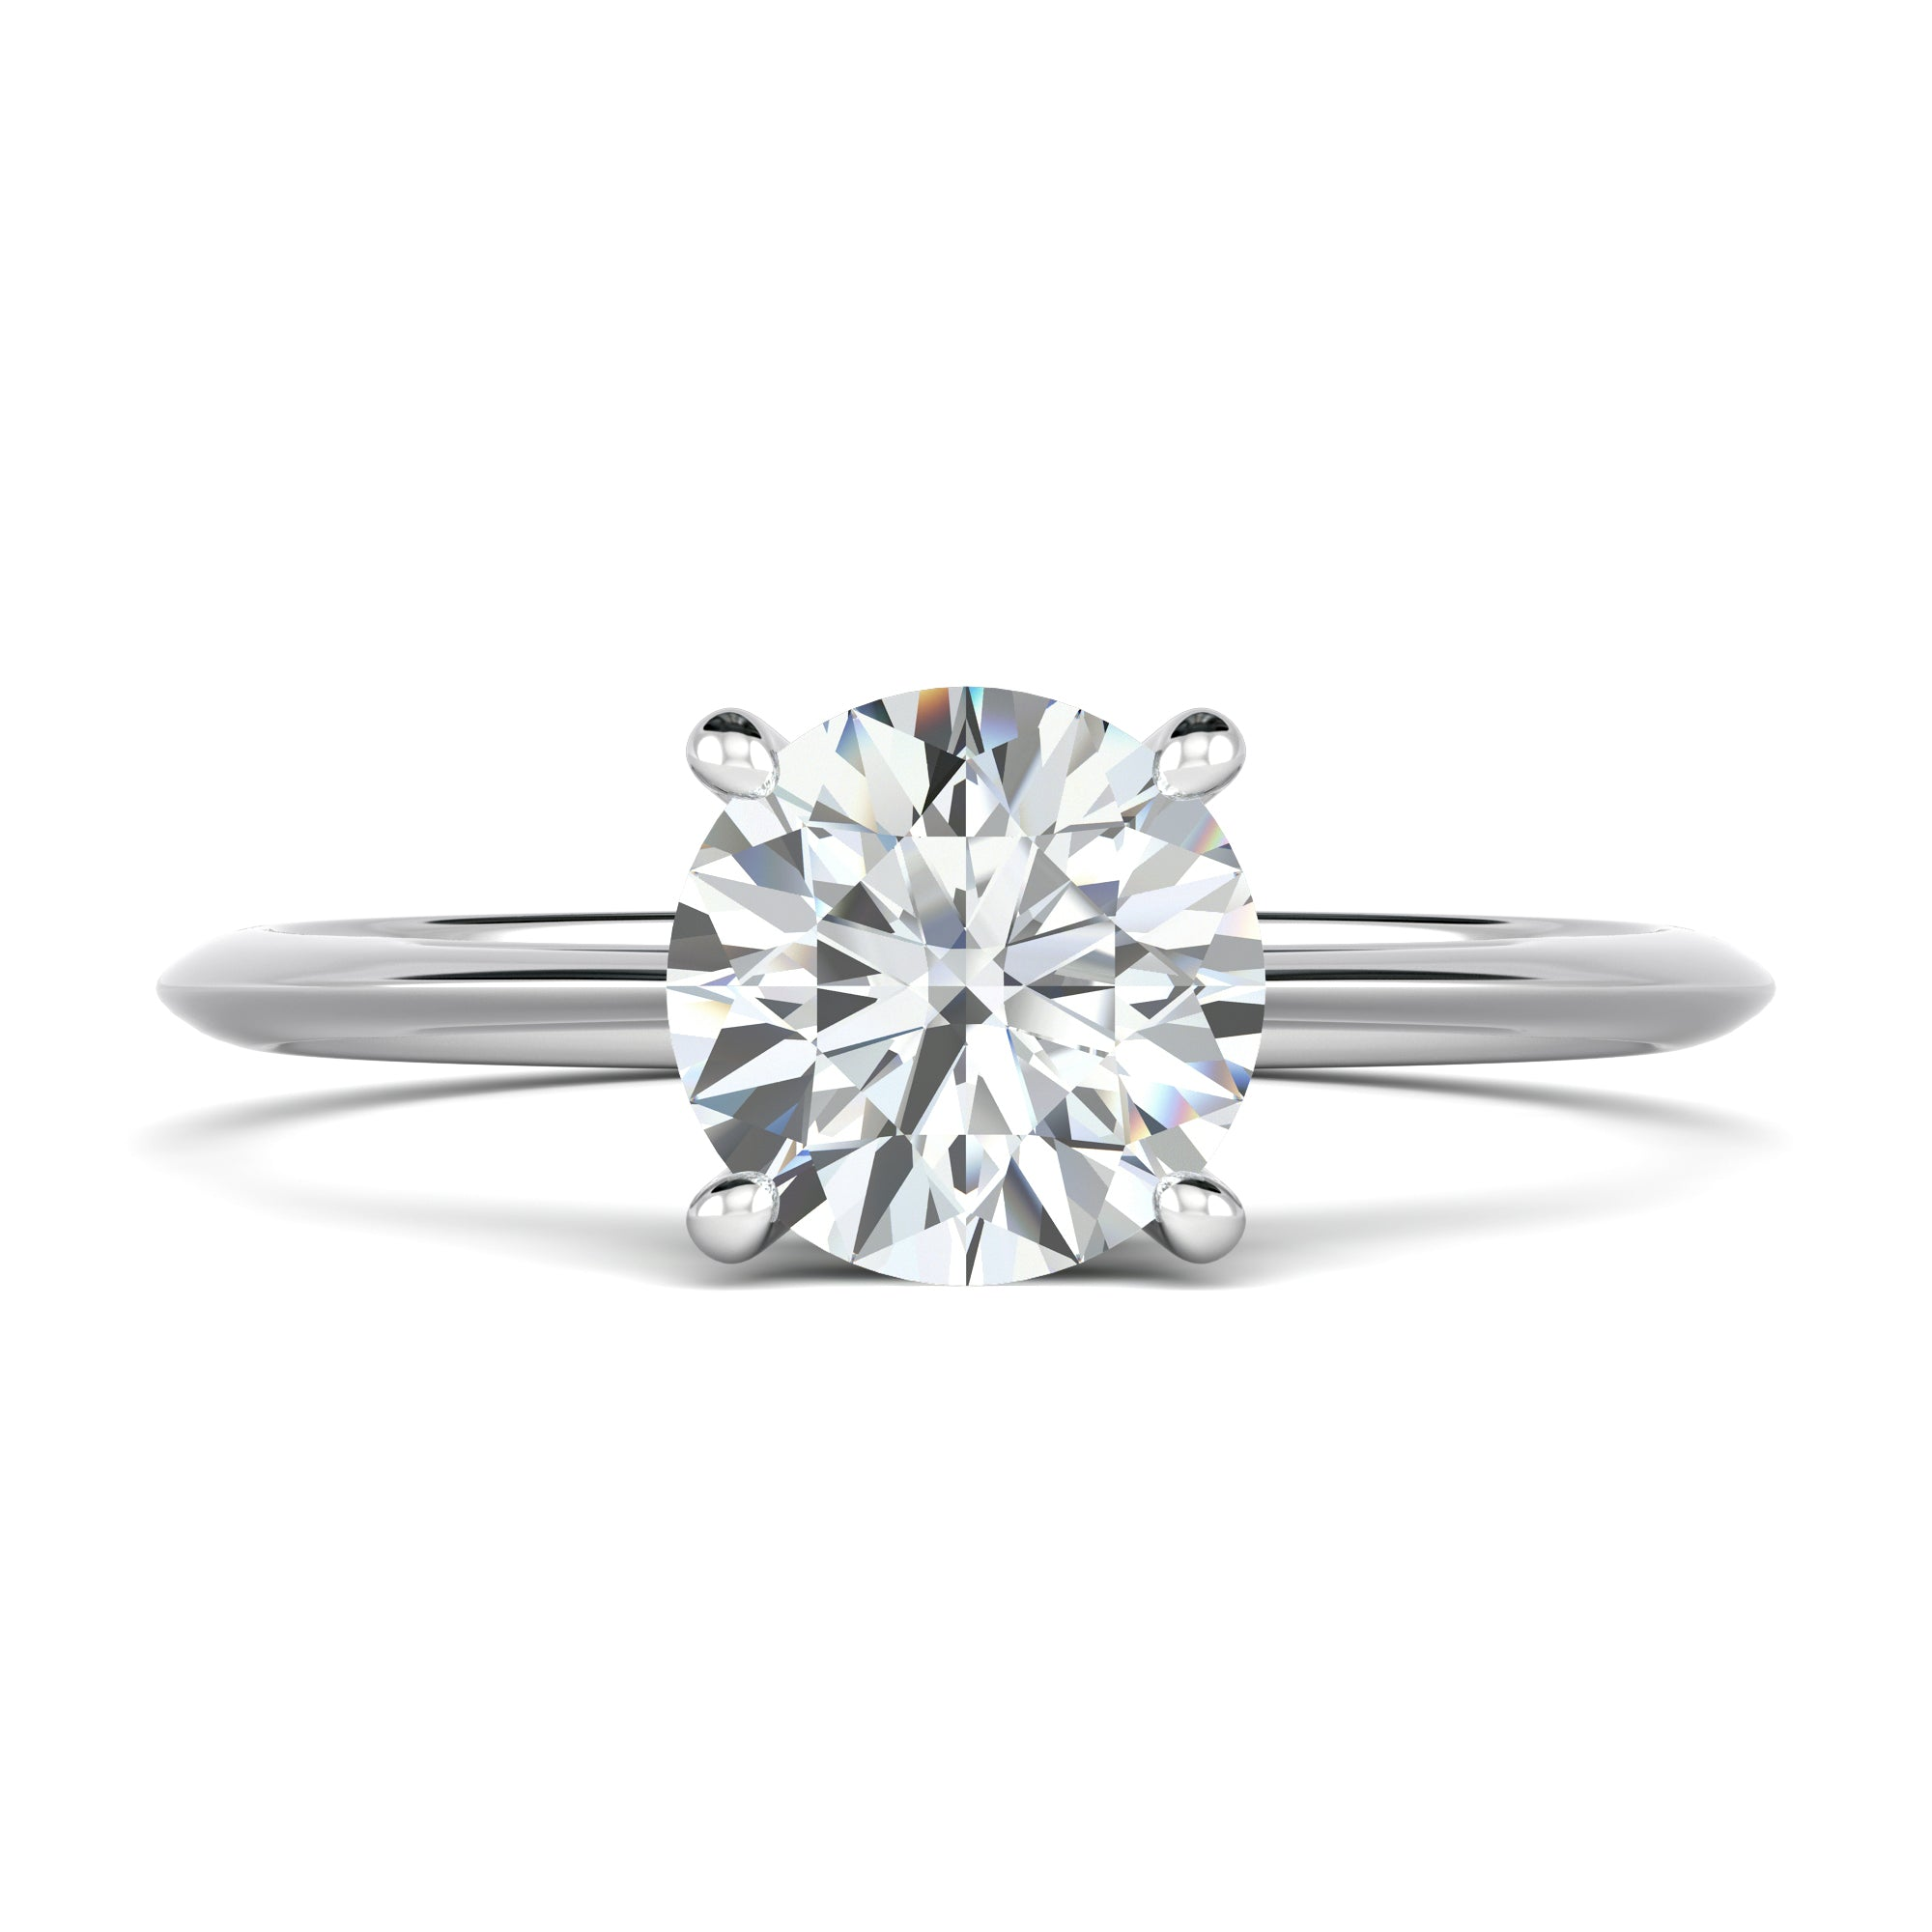 Tapered solitaire round diamond engagement ring